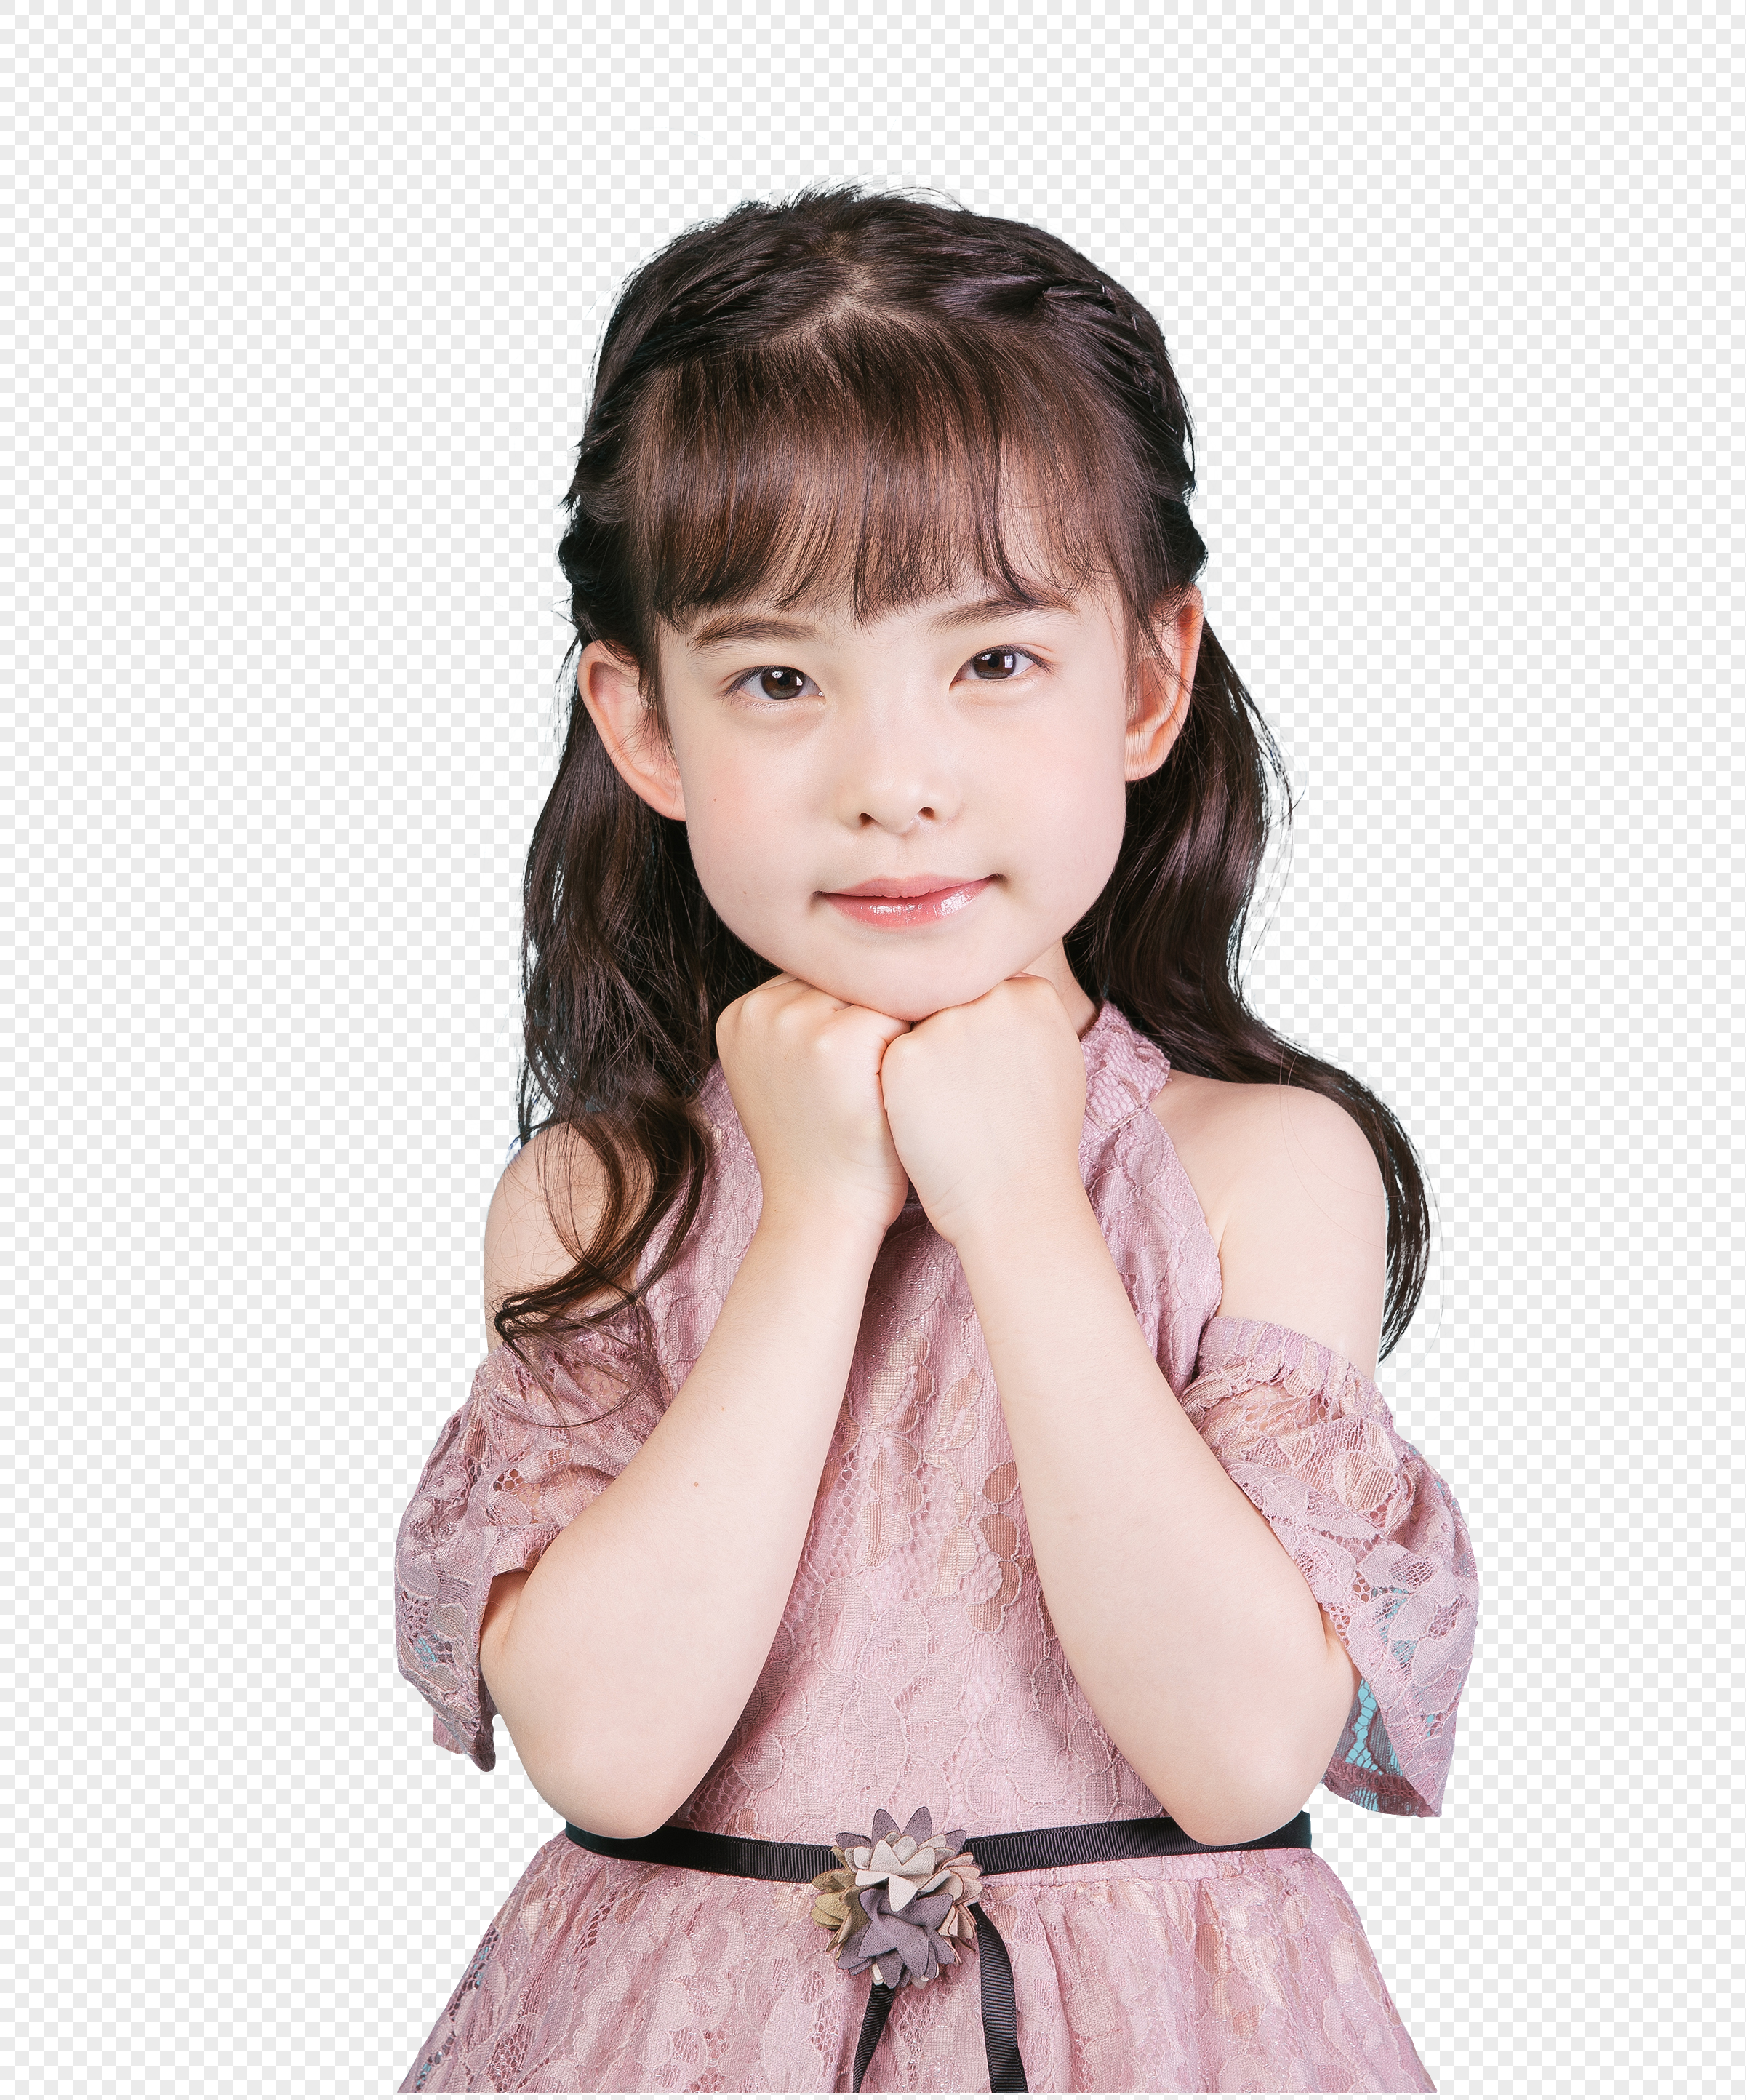 Lovely Children And Girls Png Image Picture Free Download